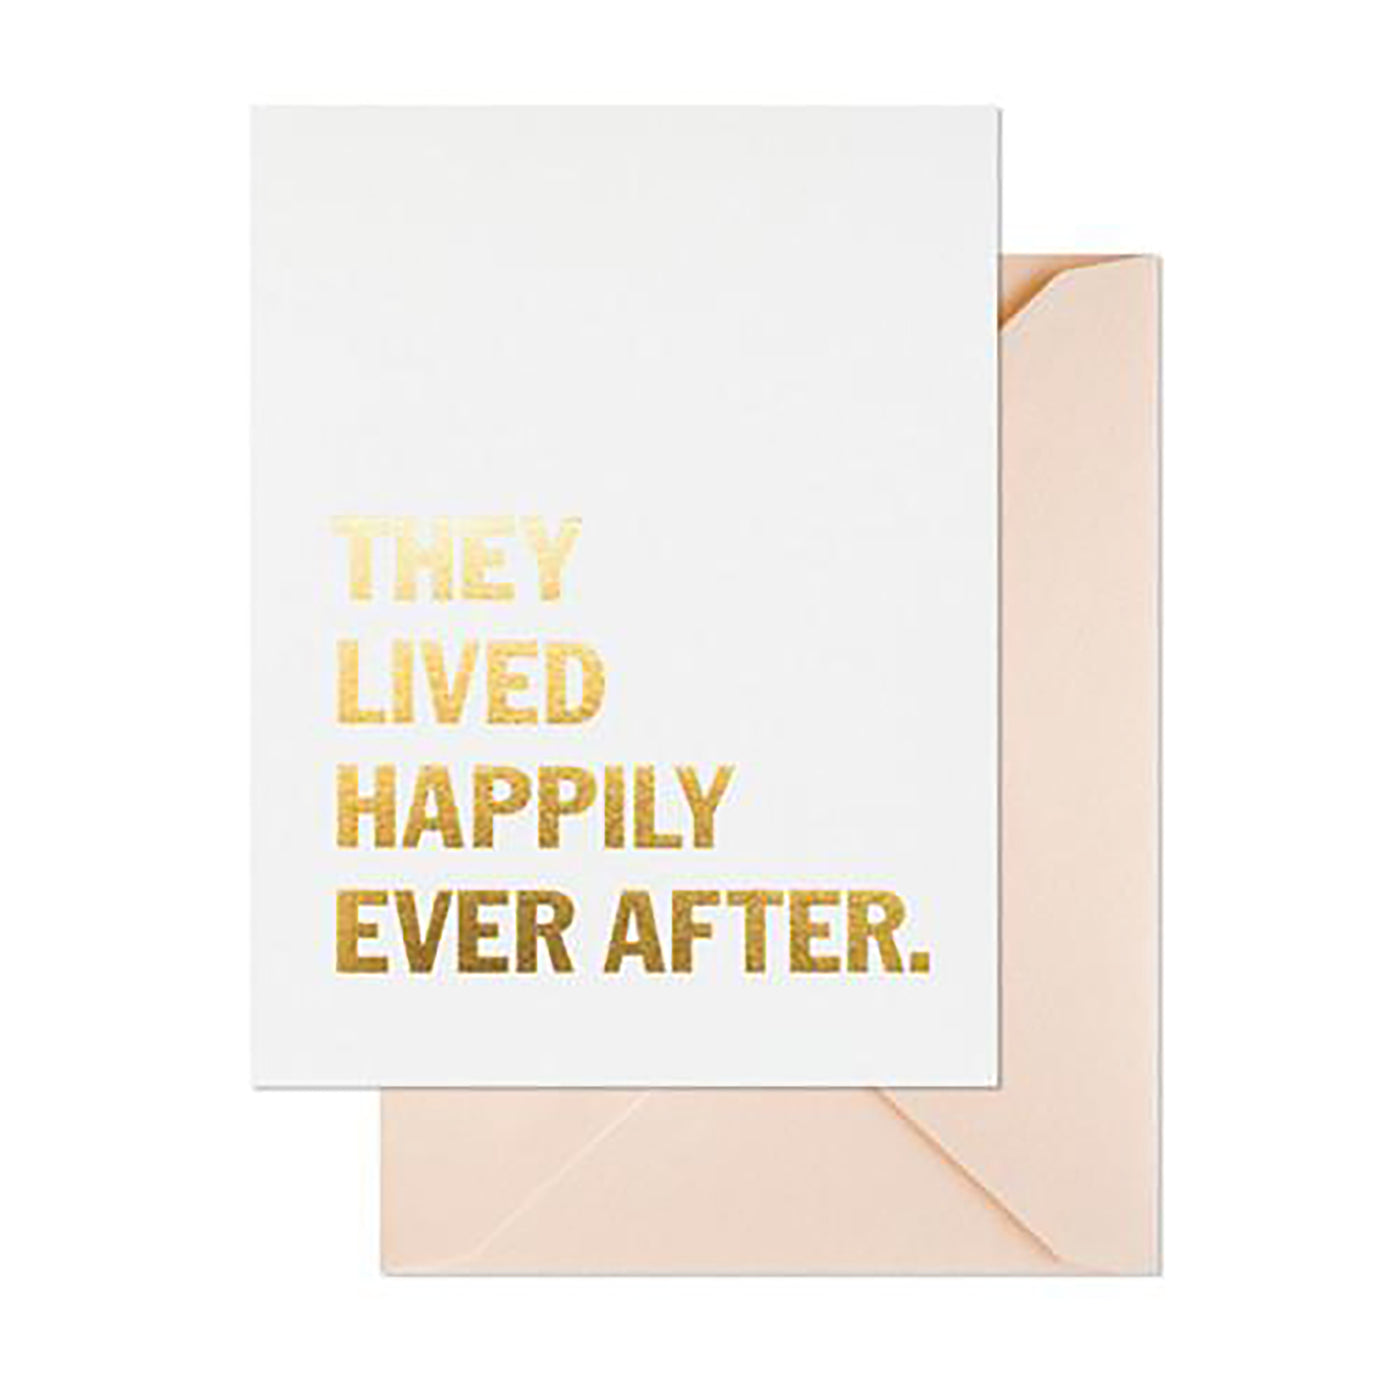 Lived Happily Ever After Card